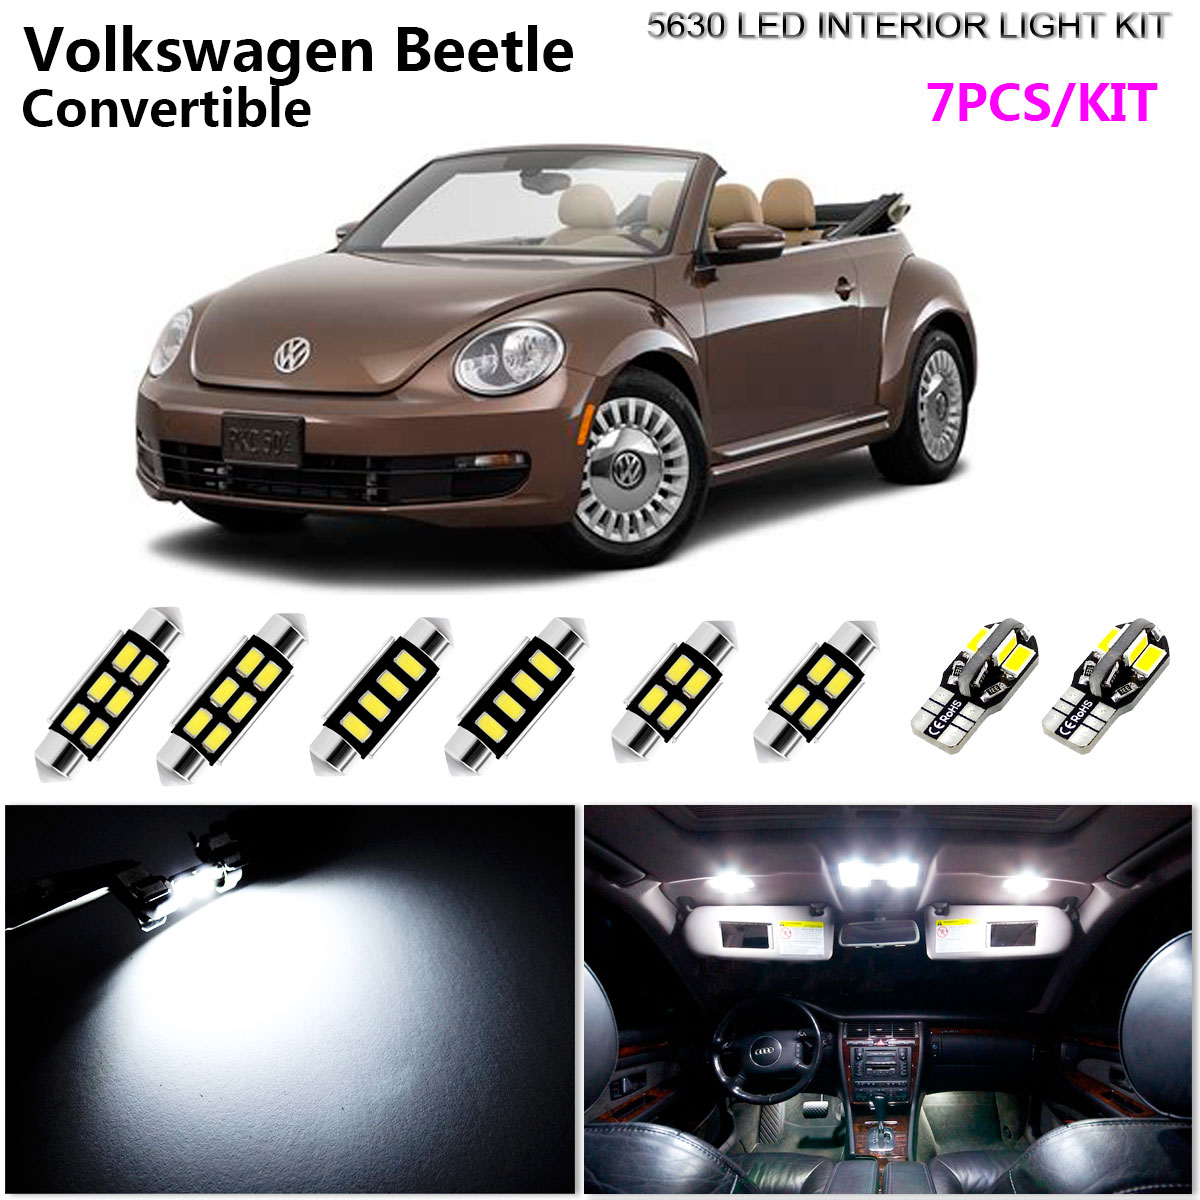 7pcs Xenonwhite 6k Interior Light Kit 5630 Led For Volkswagen Beetle 1960 Convertible